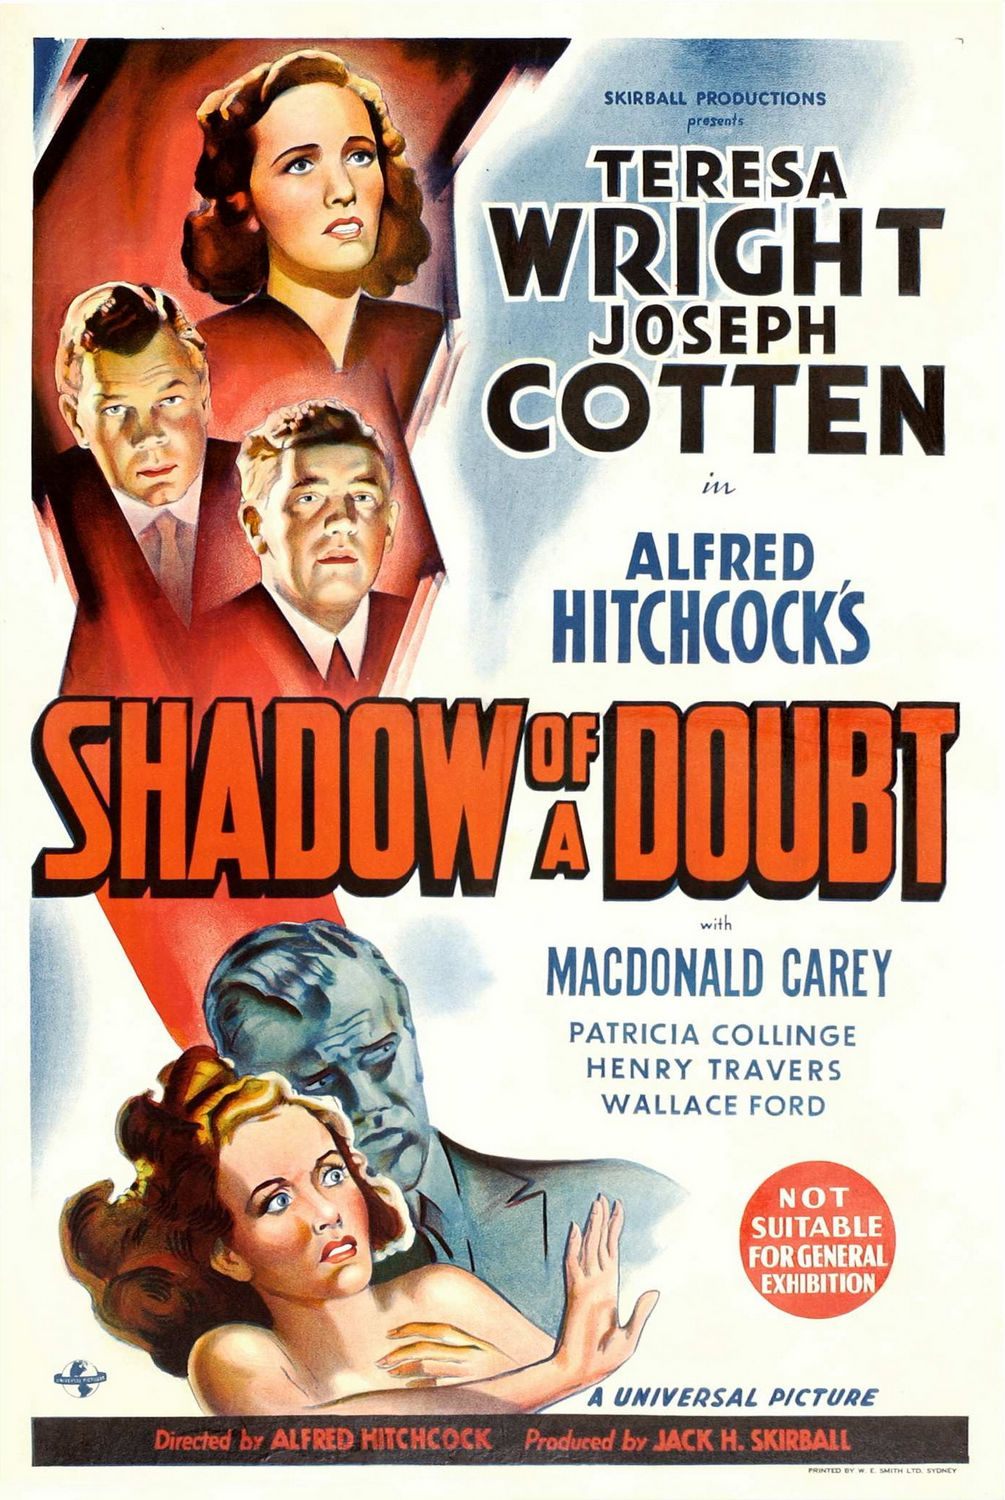 Movie poster image for SHADOW OF A DOUBT